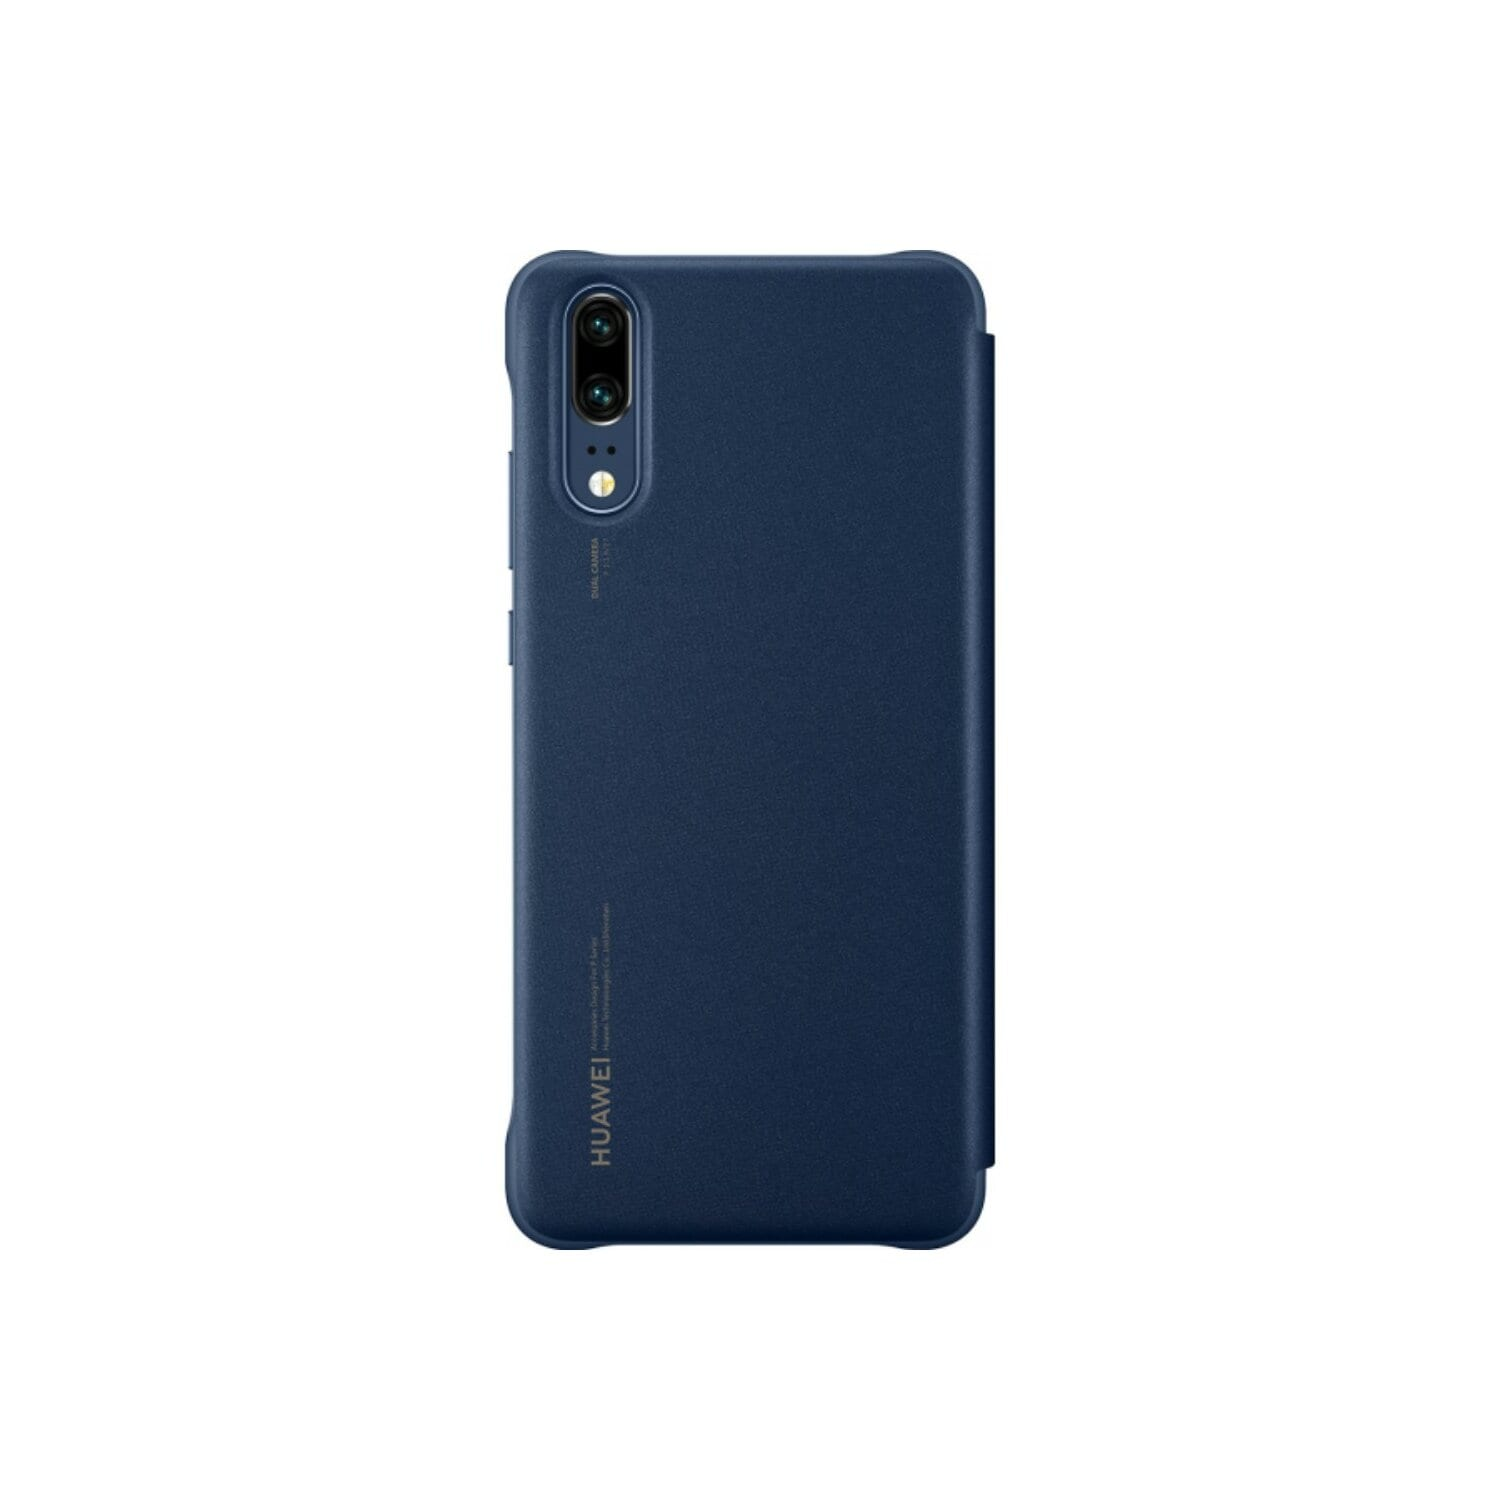 Etui HUAWEI Smart View Flip Cover do Huawei P20 Błękitny